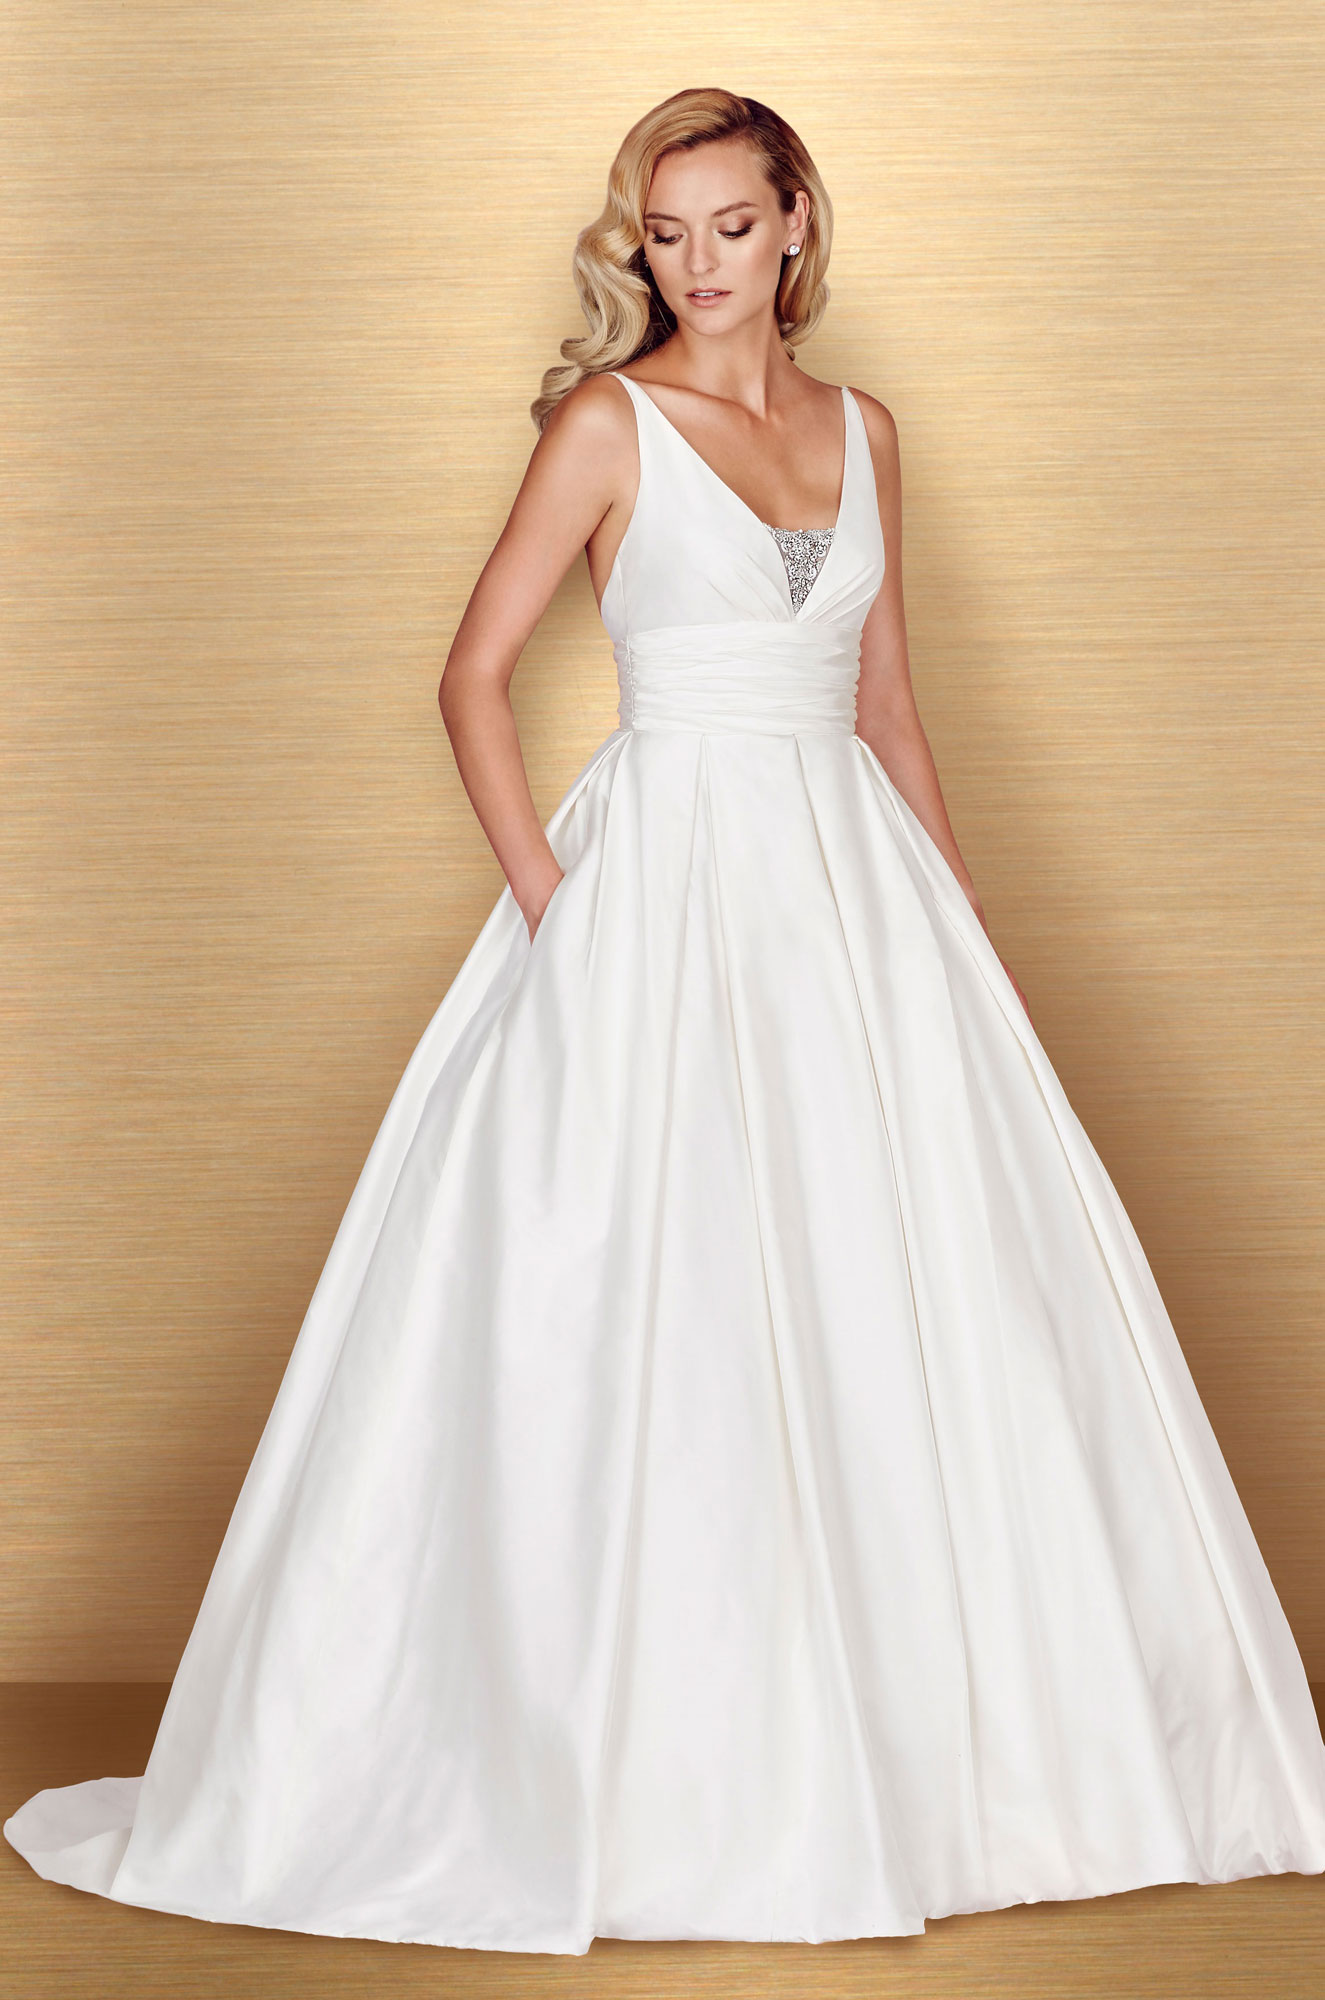 full skirt wedding dress style 4661 paloma blanca